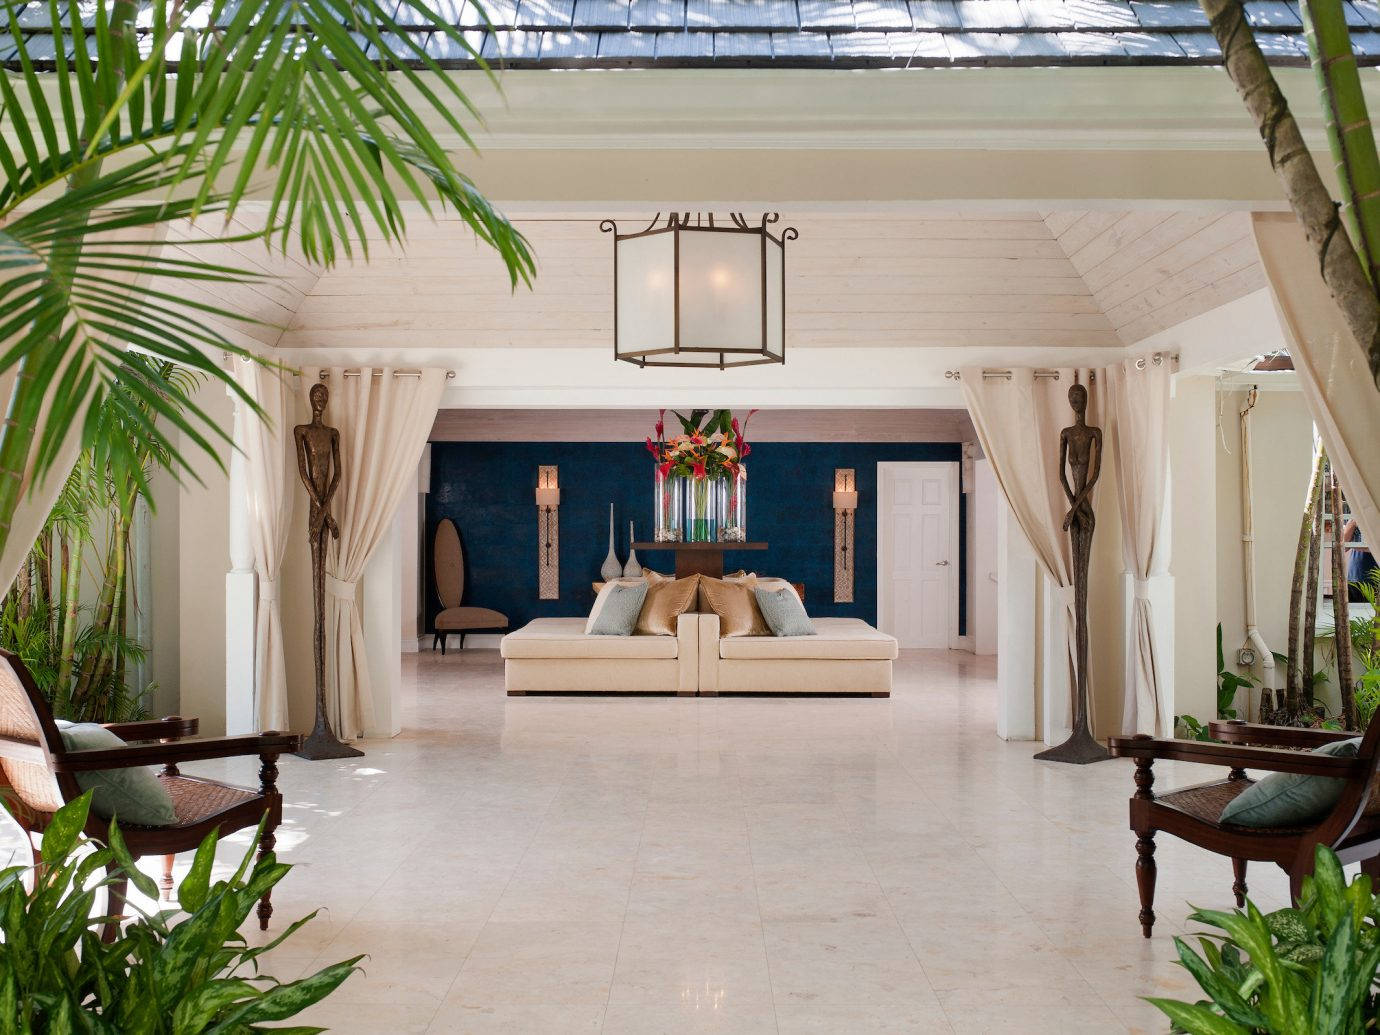 Hotels Luxury Travel plant indoor floor Living window property room estate interior design furniture home living room real estate house backyard Resort Courtyard Patio Villa outdoor structure Lobby flooring hacienda area decorated dining table